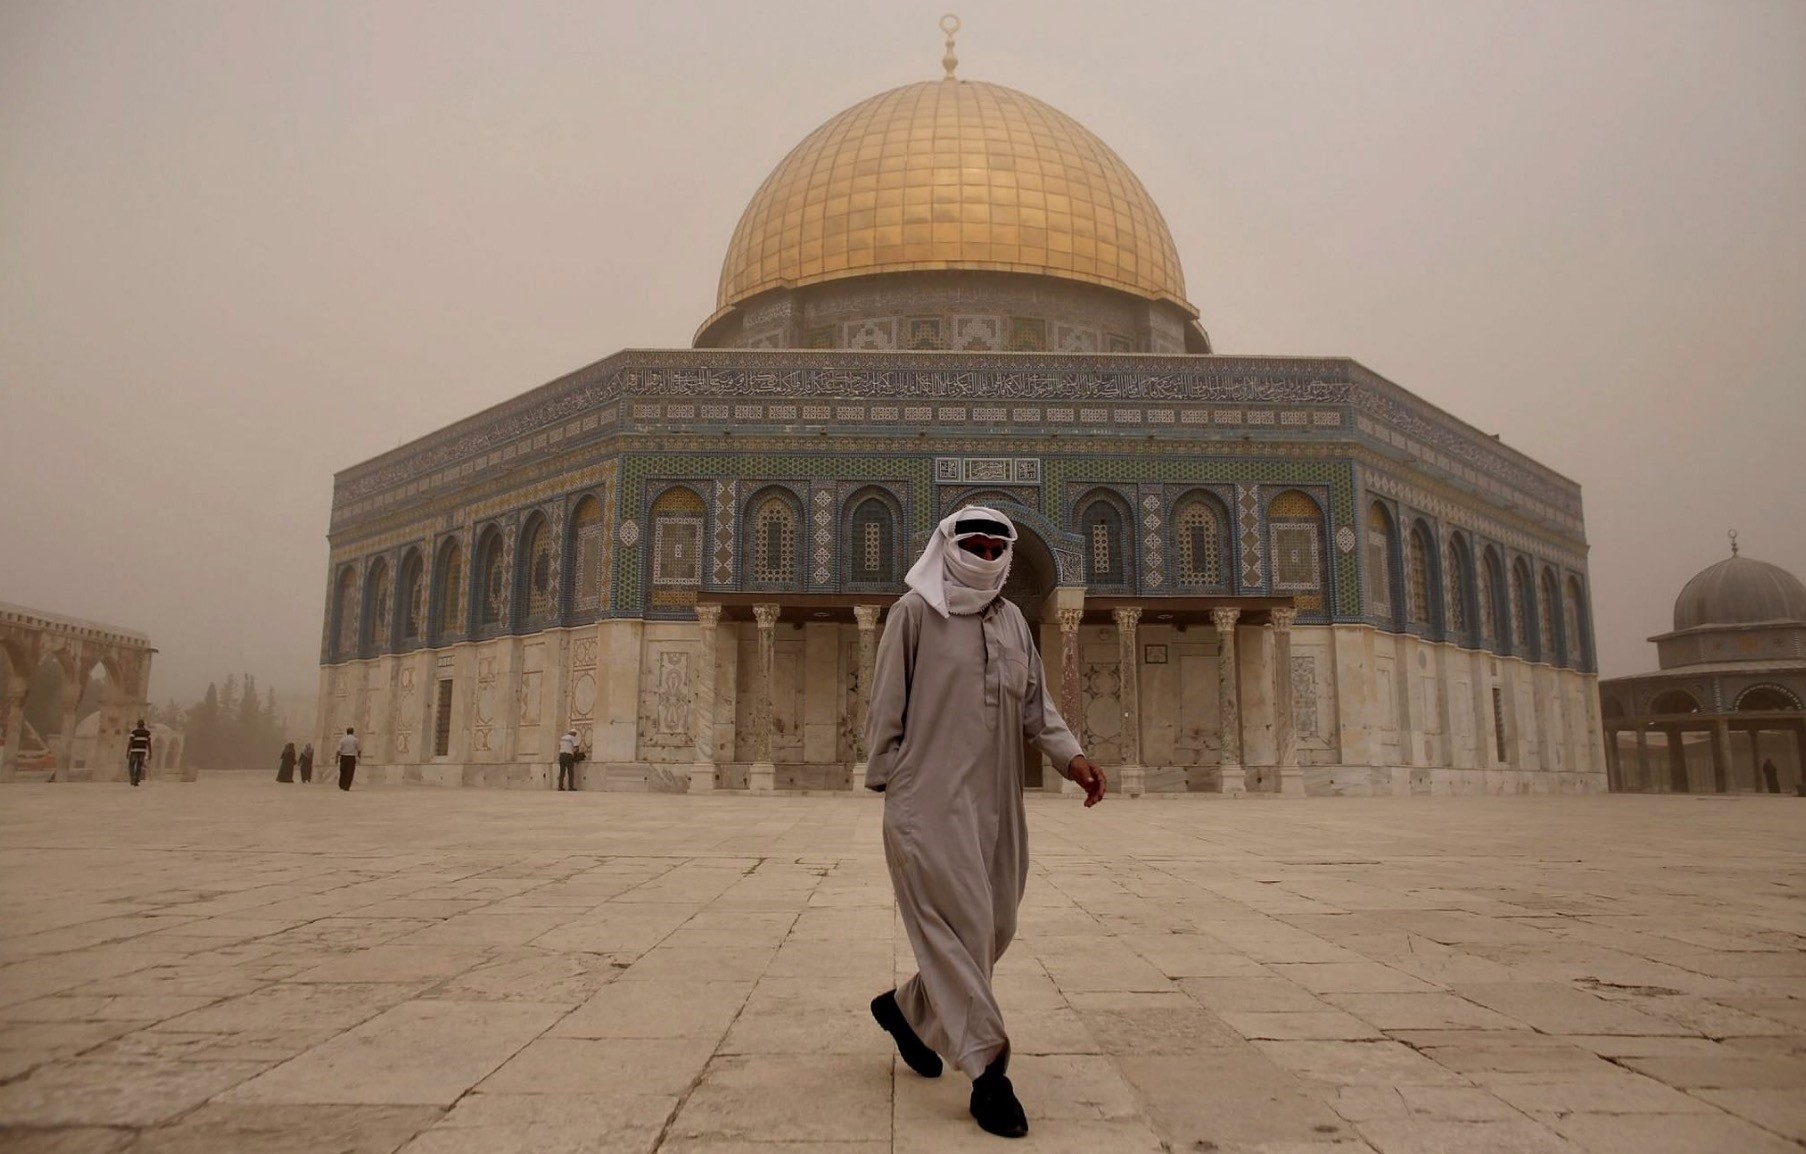 A man walks in the Al-Aqsa compound as a heavy sandstorm hits the Old City of East Jerusalem, Sept. 8, 2015.